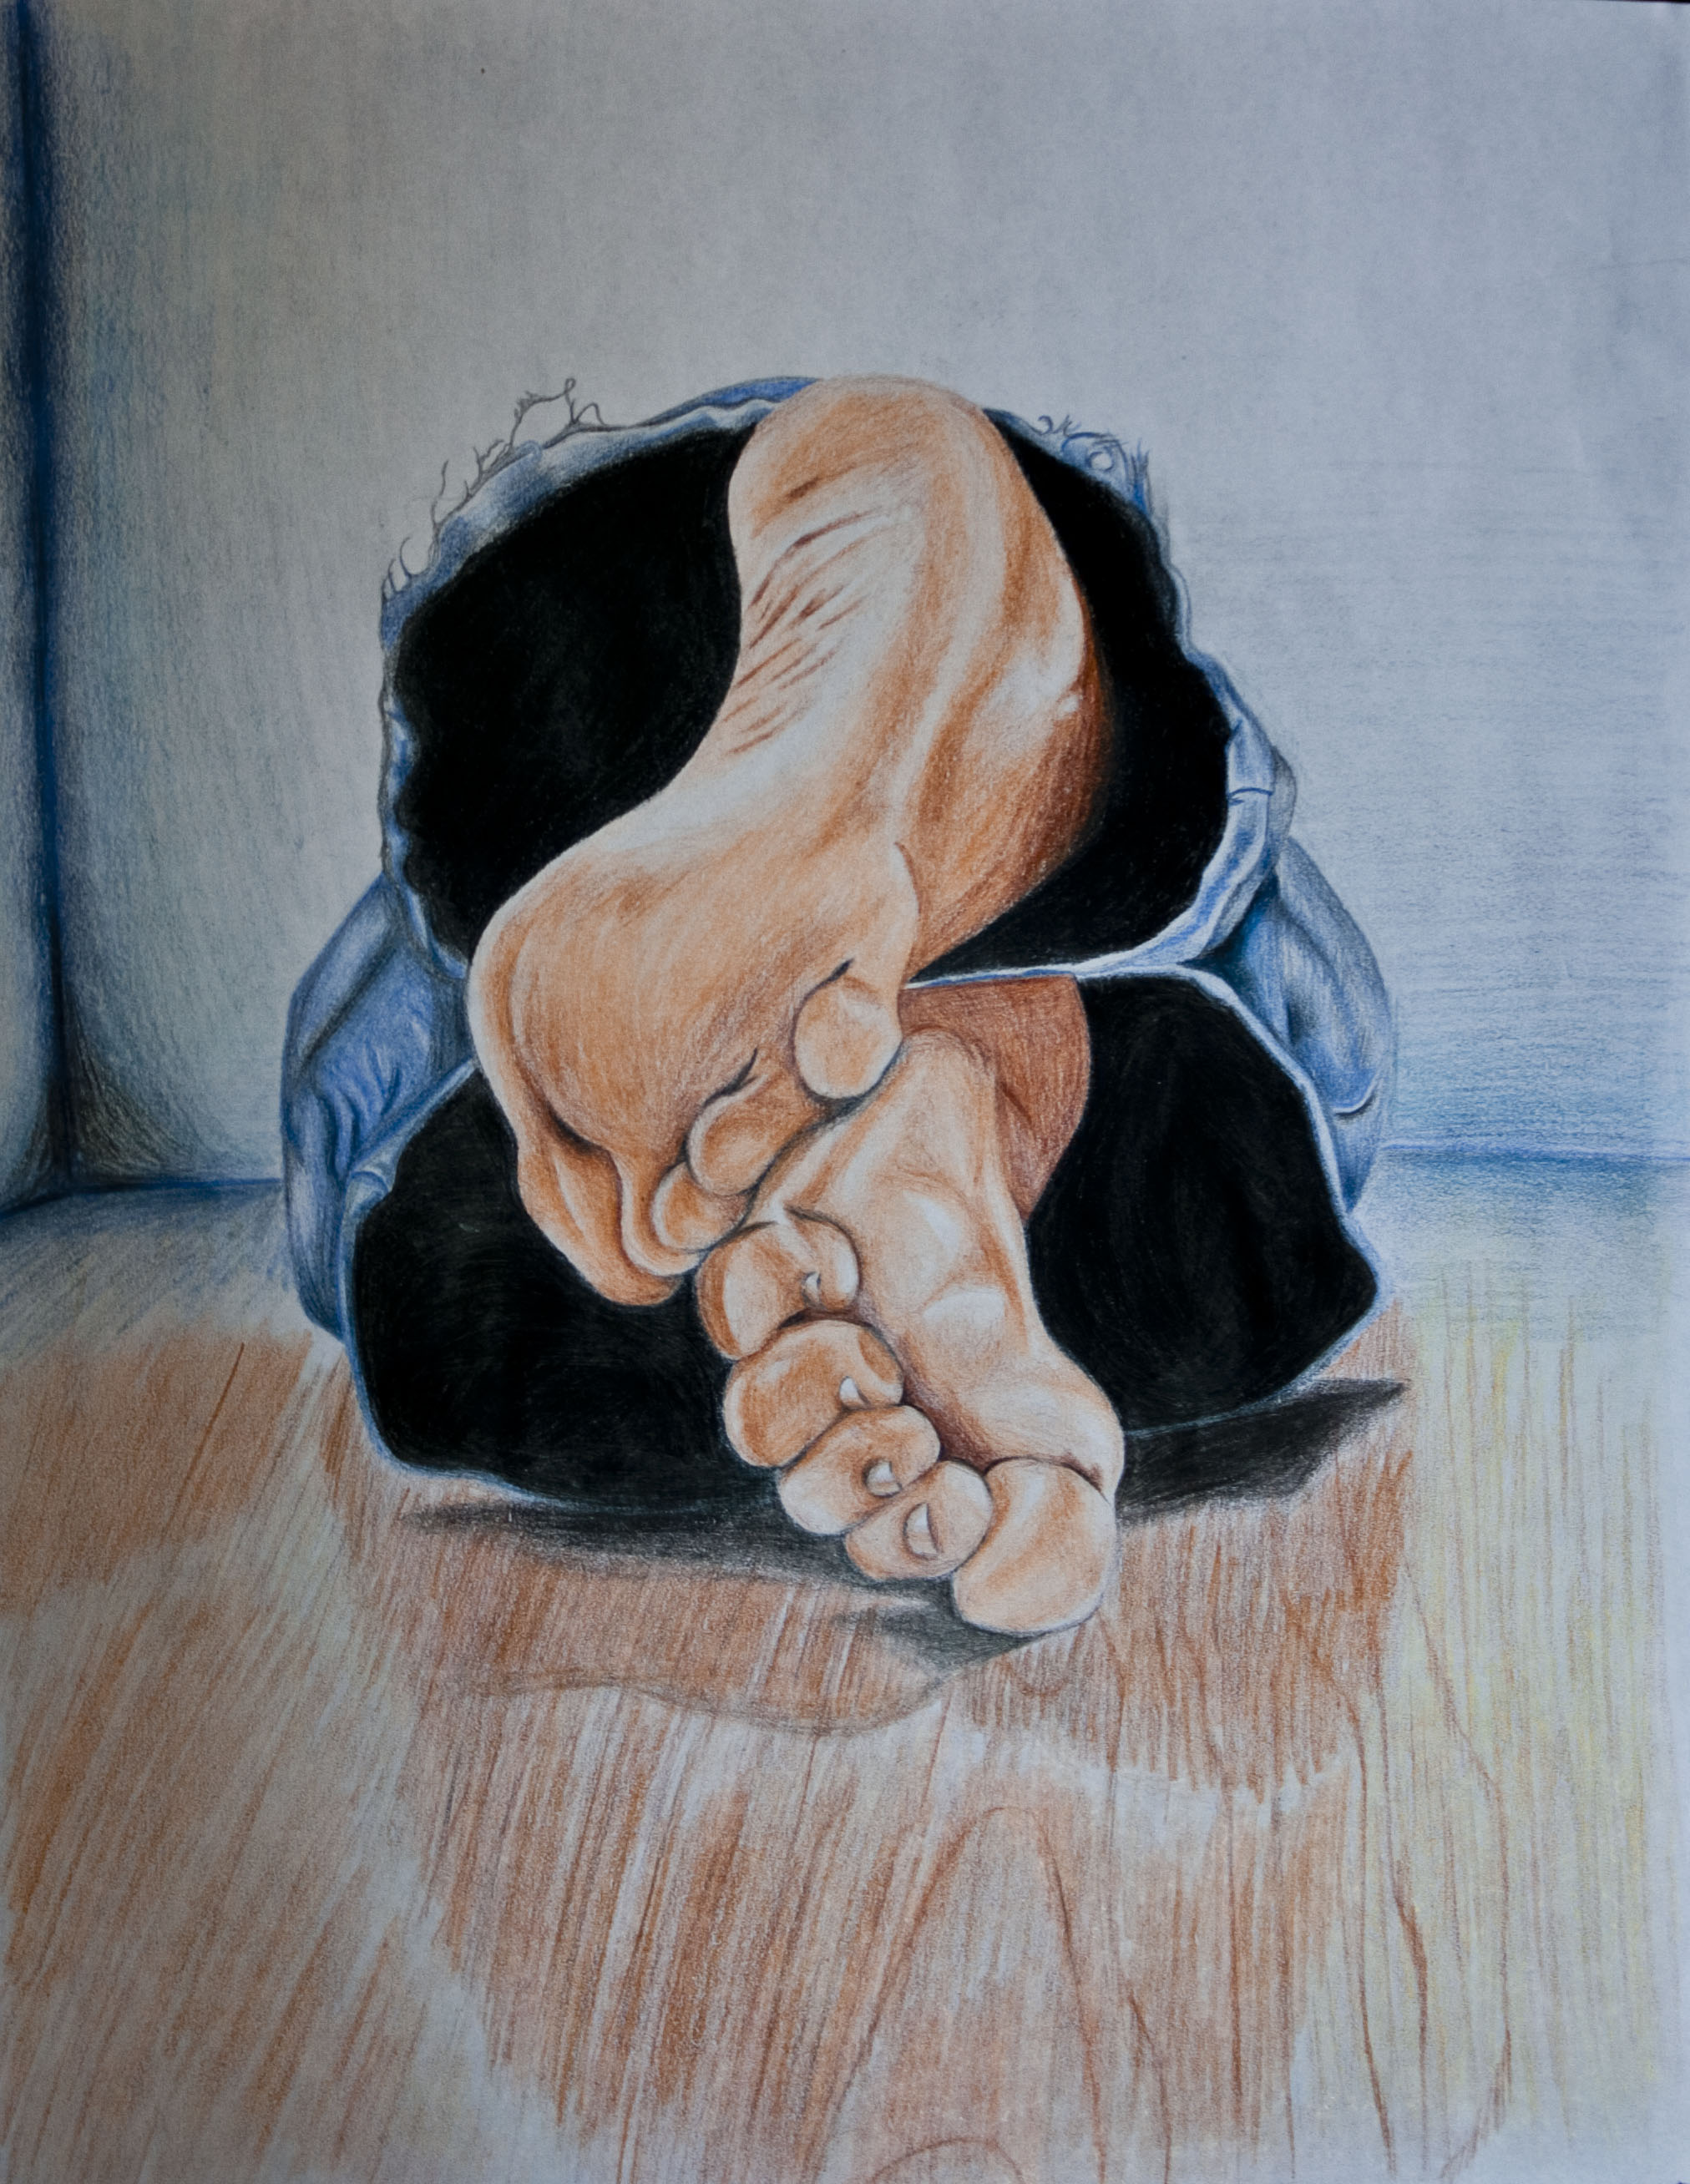 Feet Illustration